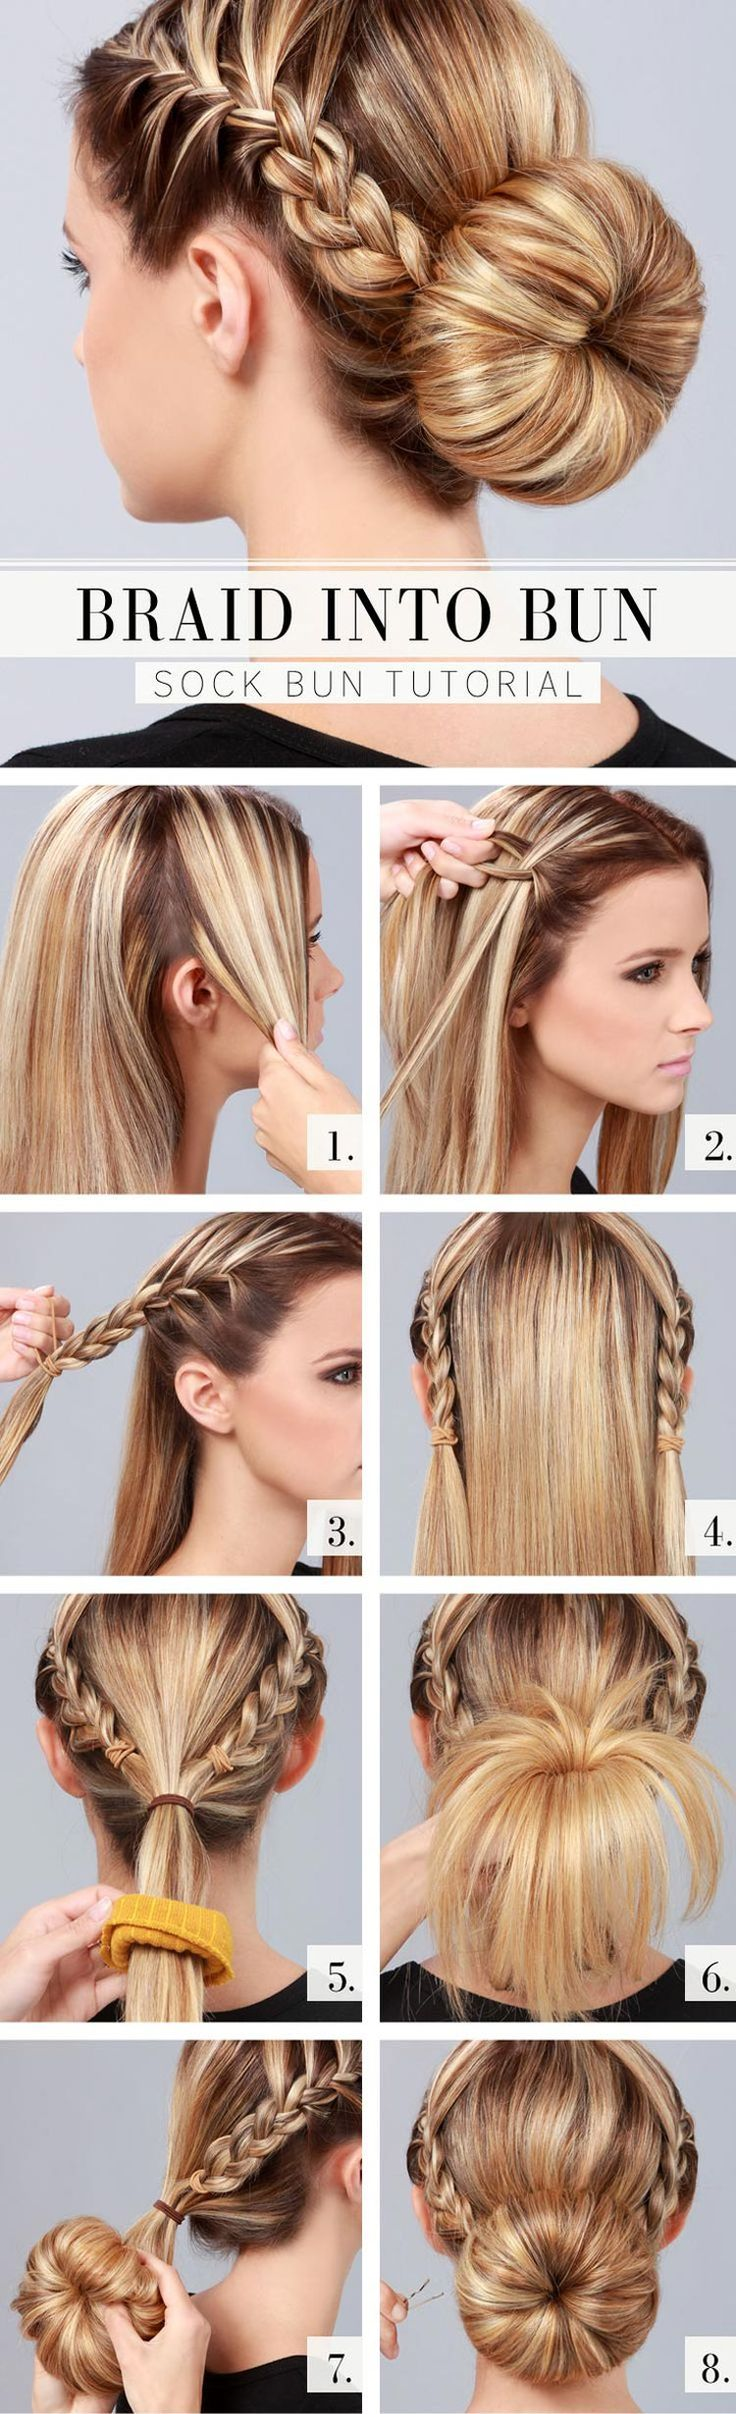 212 best images about hair styles on pinterest | easy hairstyles